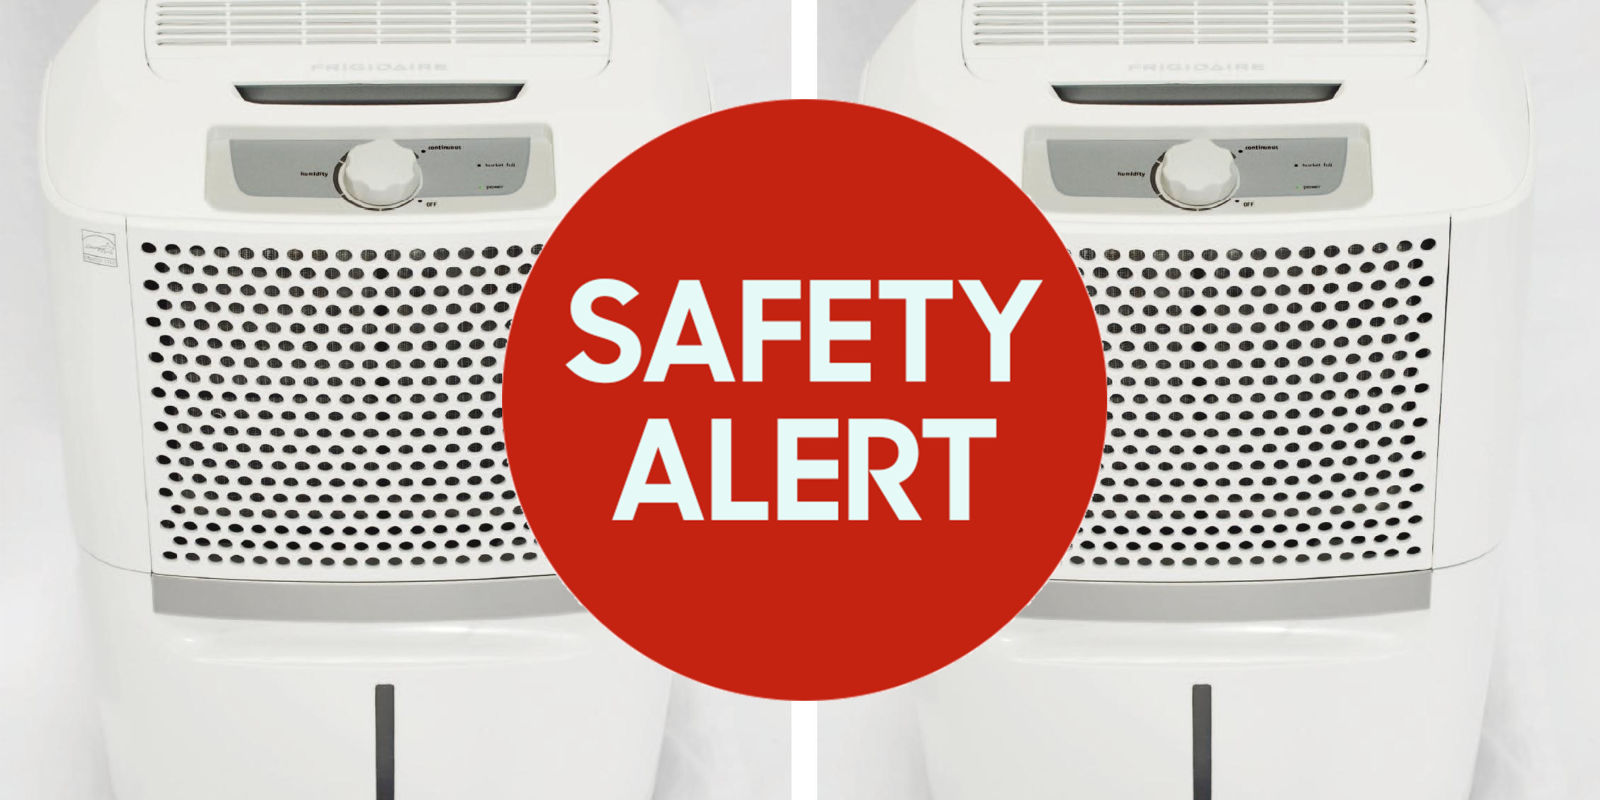 Million Dehumidifiers Recalled for Fire Risk Midea Recall #BC200F